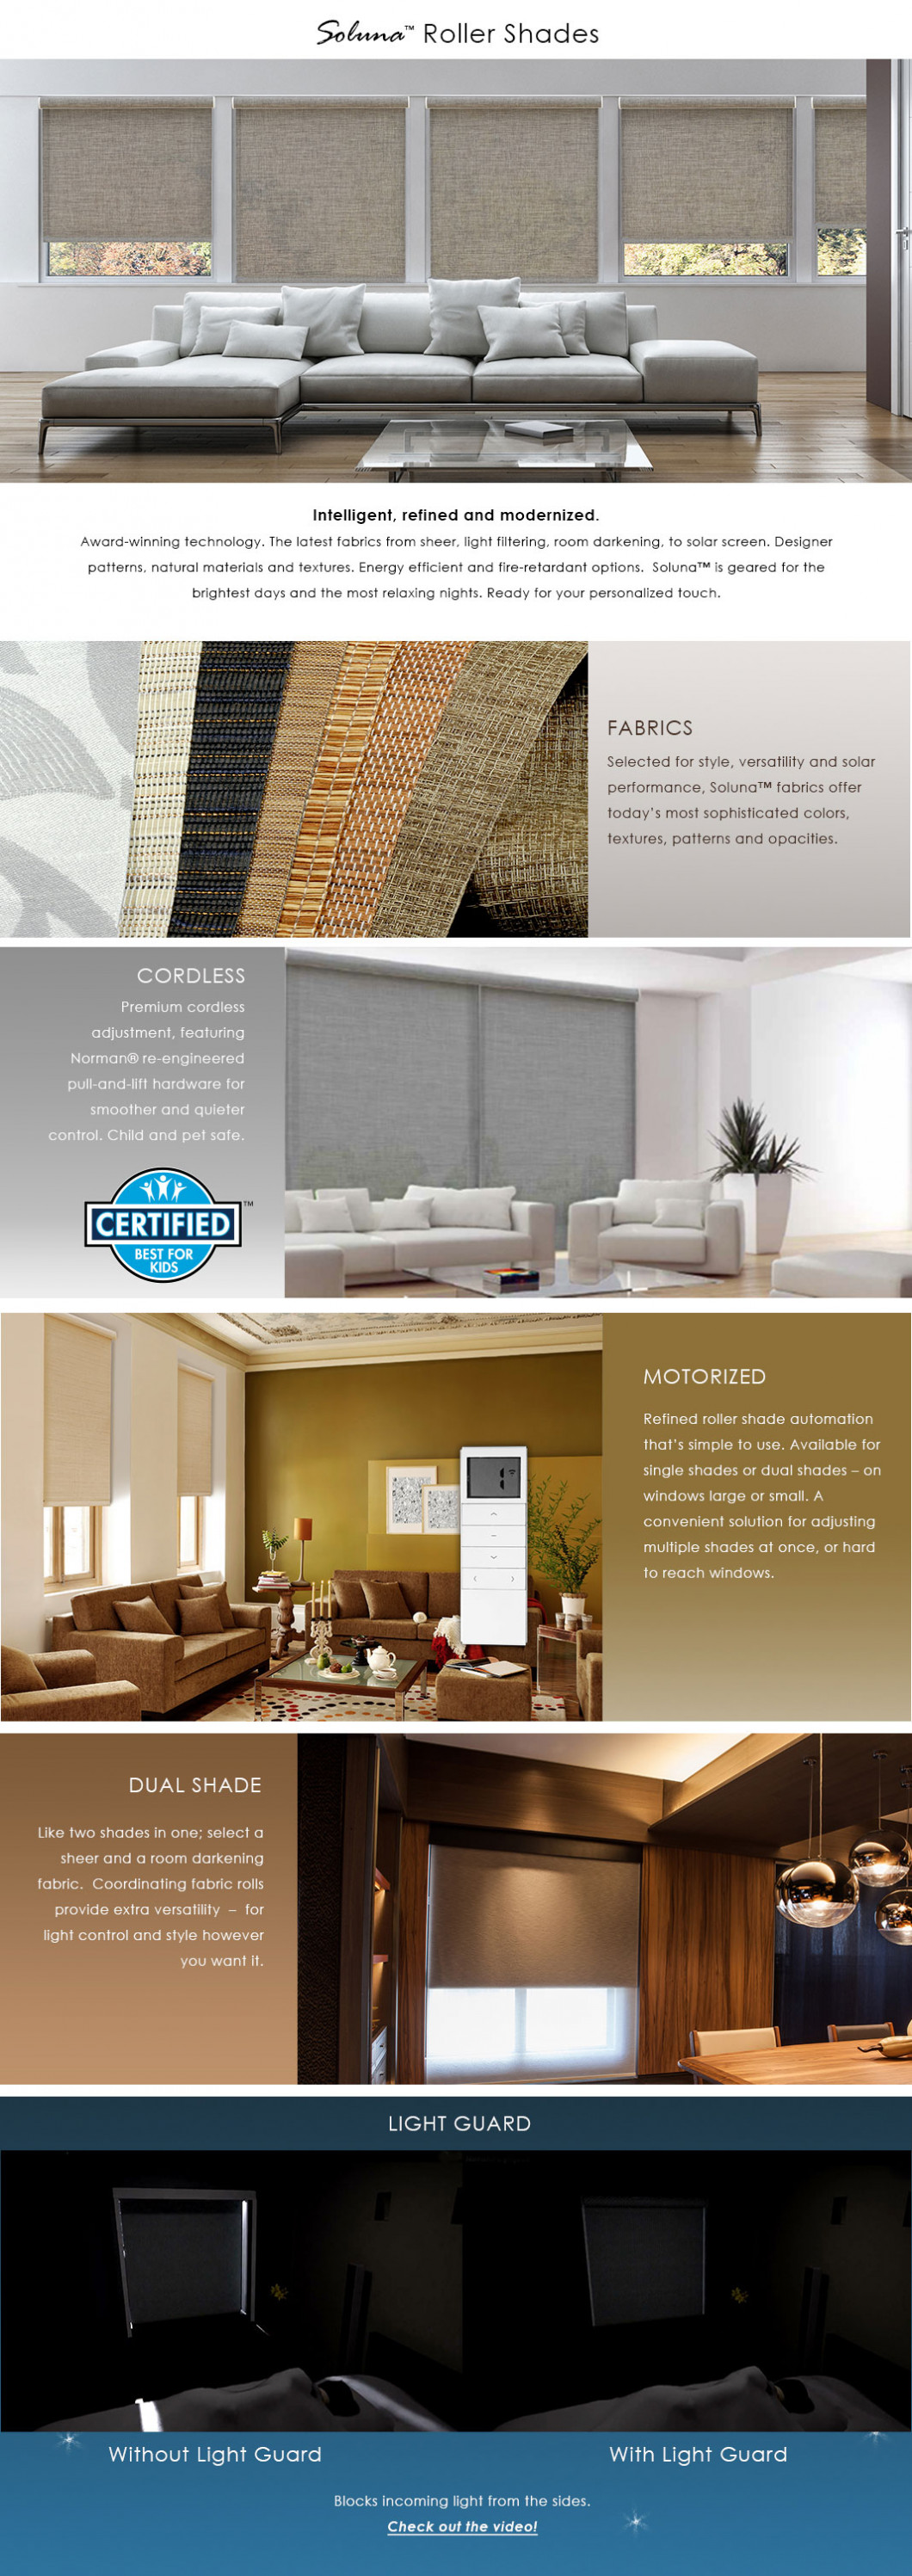 NORMAN ROLLER SHADES